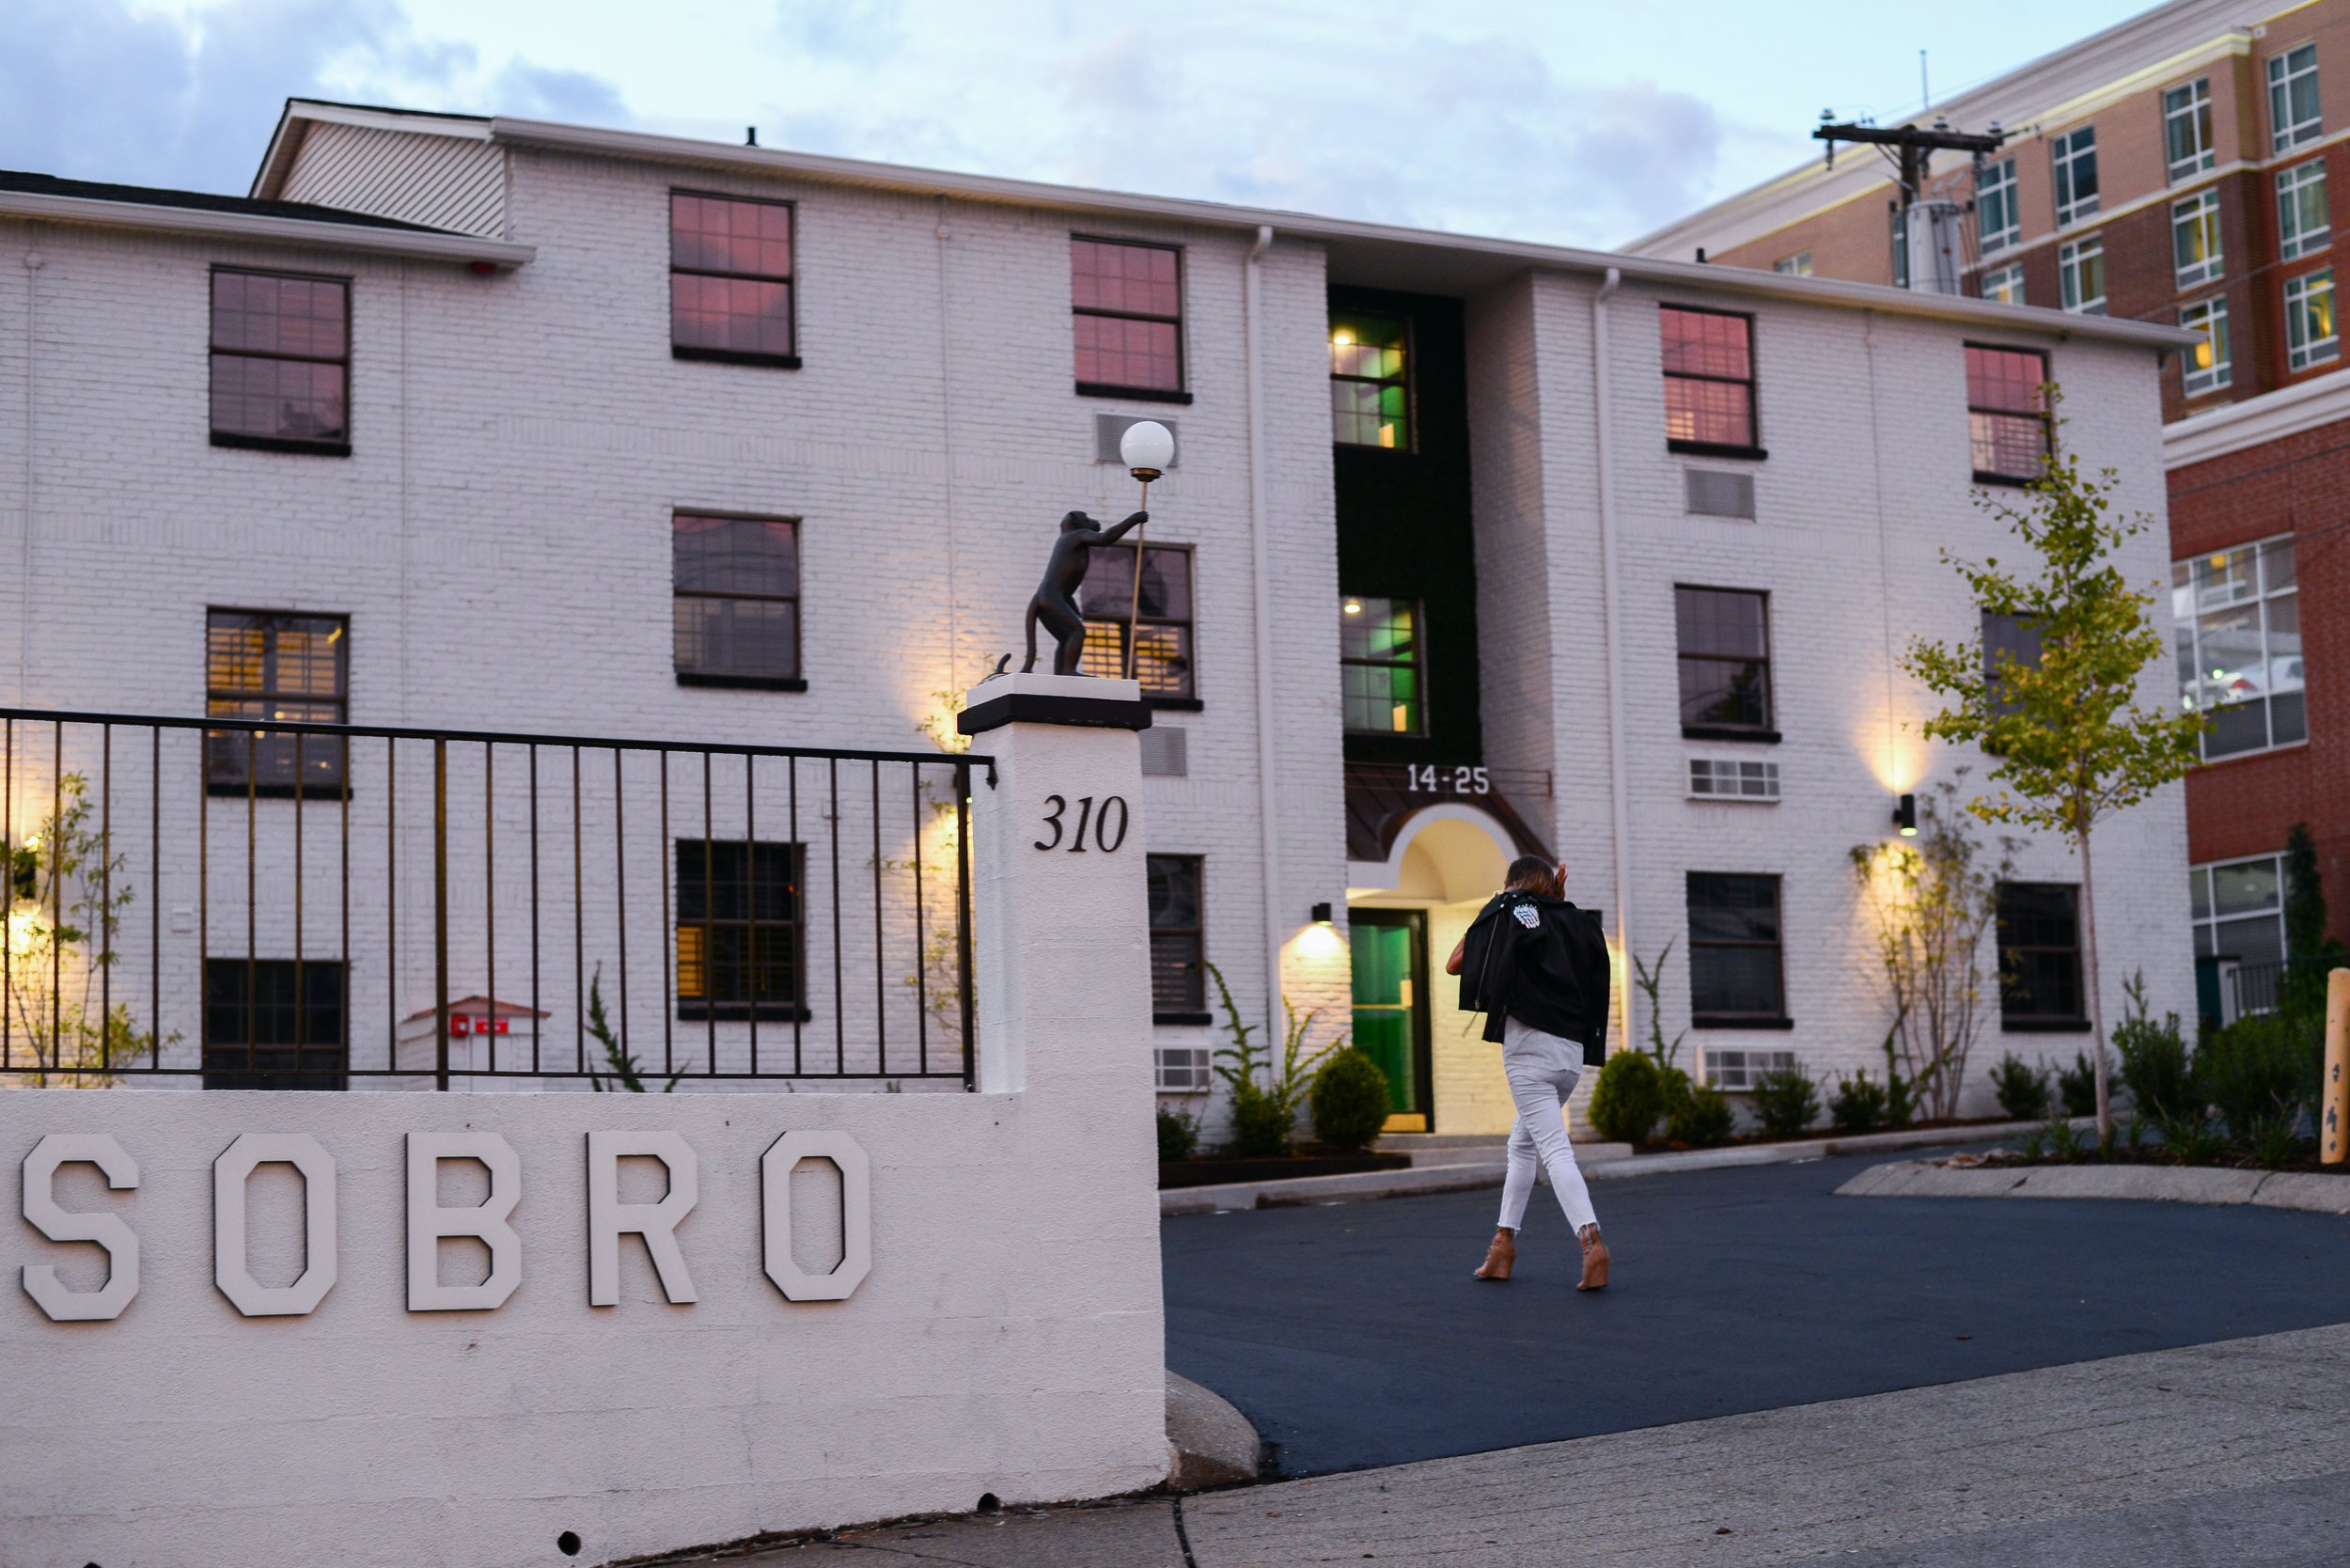 Sobro_Guest_House_S2-5147_converted.jpg